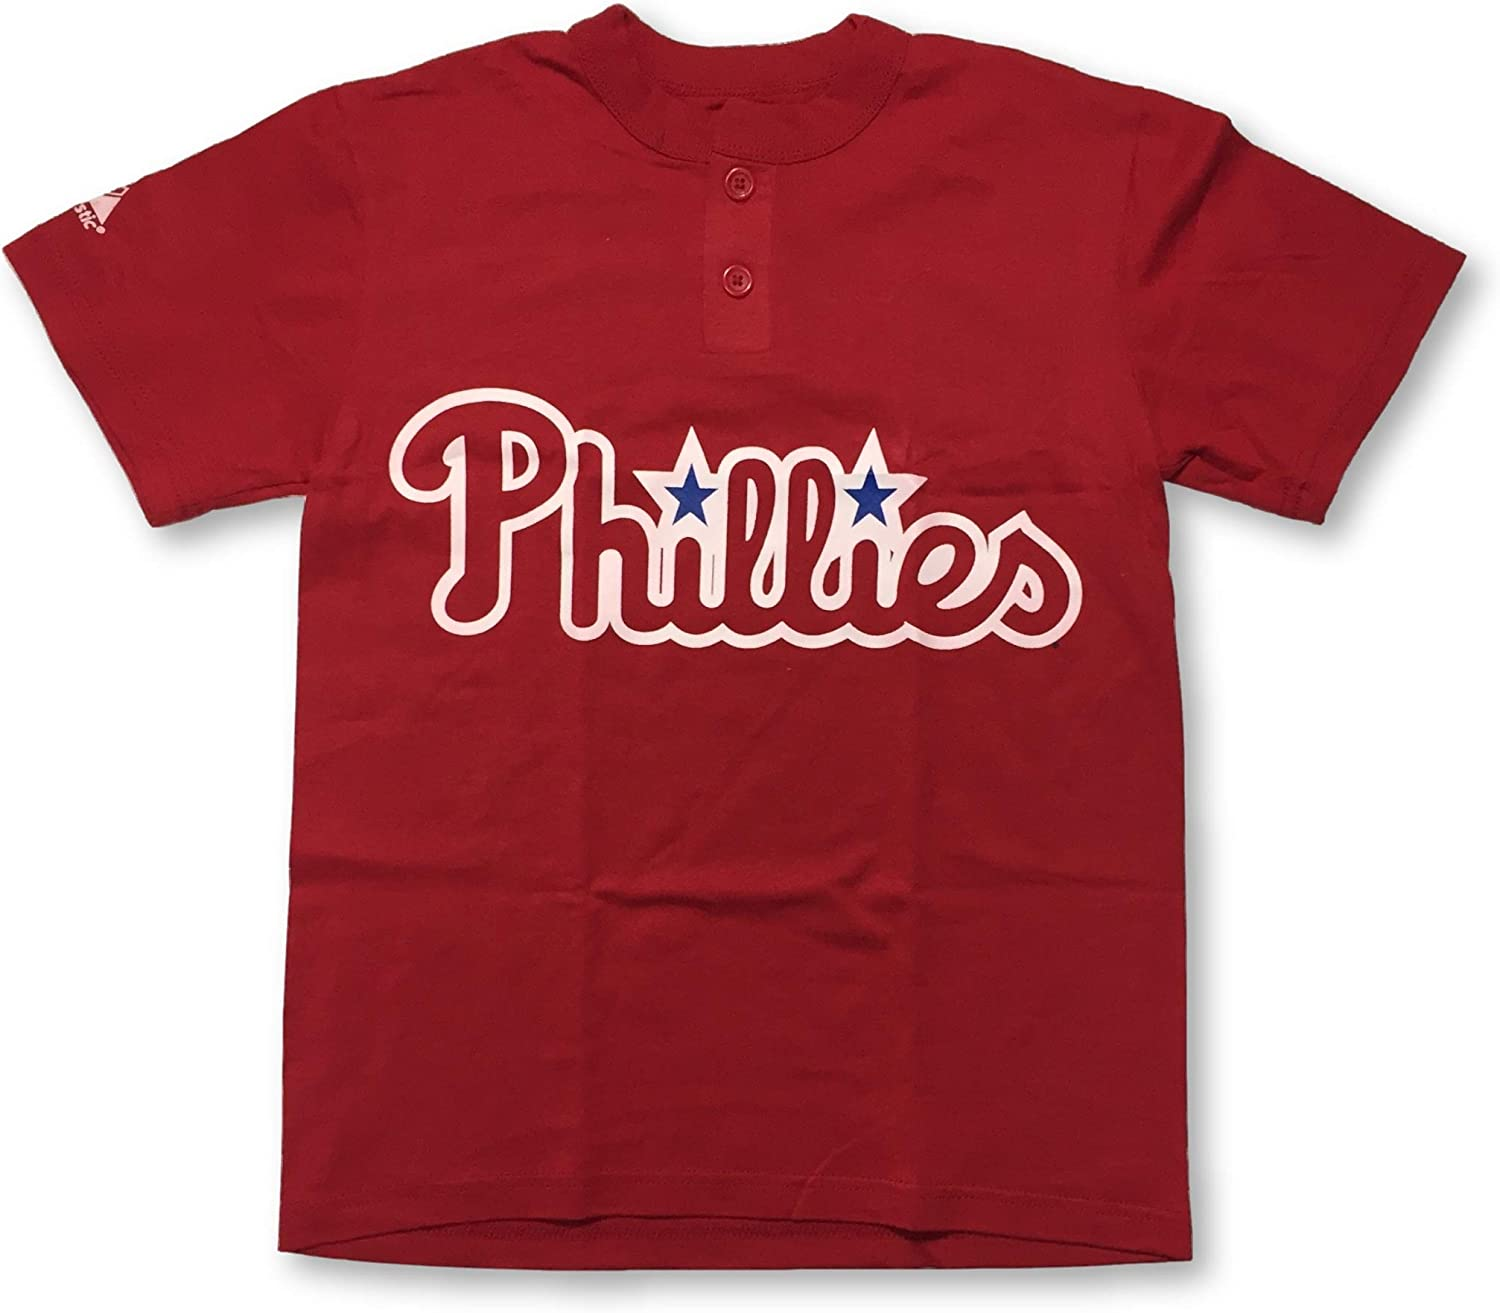 Youth Medium Two Button MLB Officially Licensed Majestic Major League Baseball Replica Jersey Philadelphia Phillies